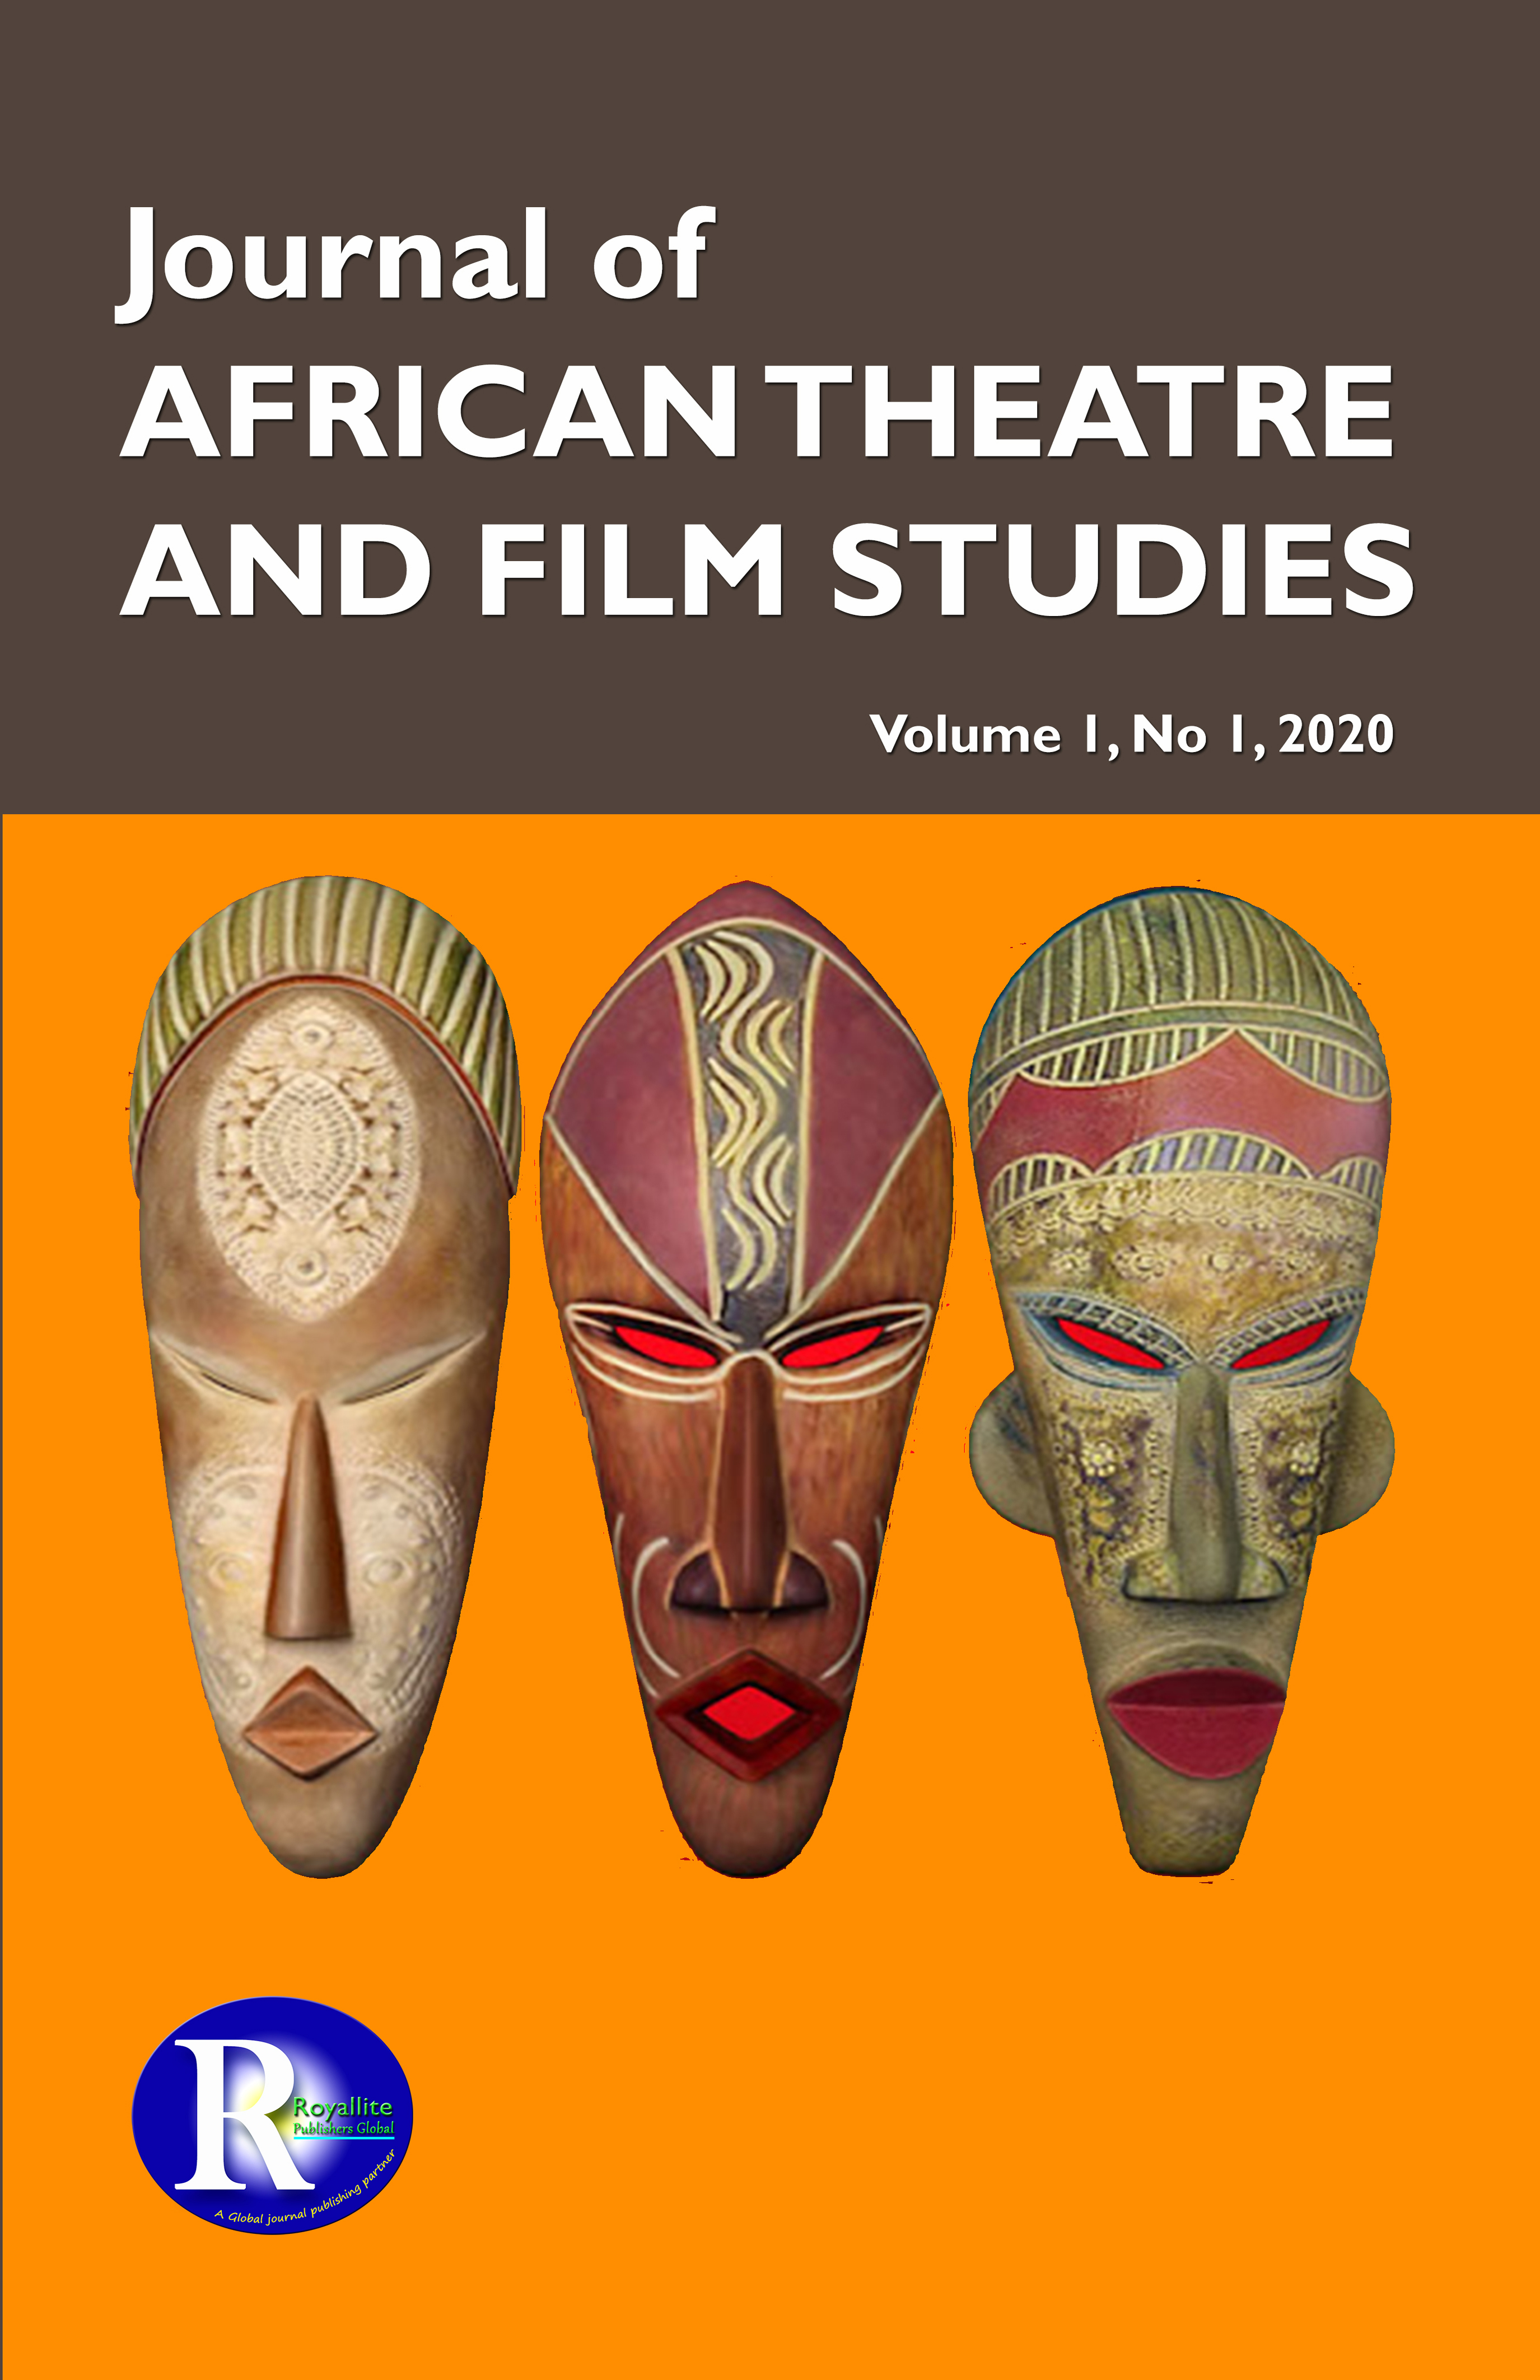 Journal of African Theatre and Film Studies